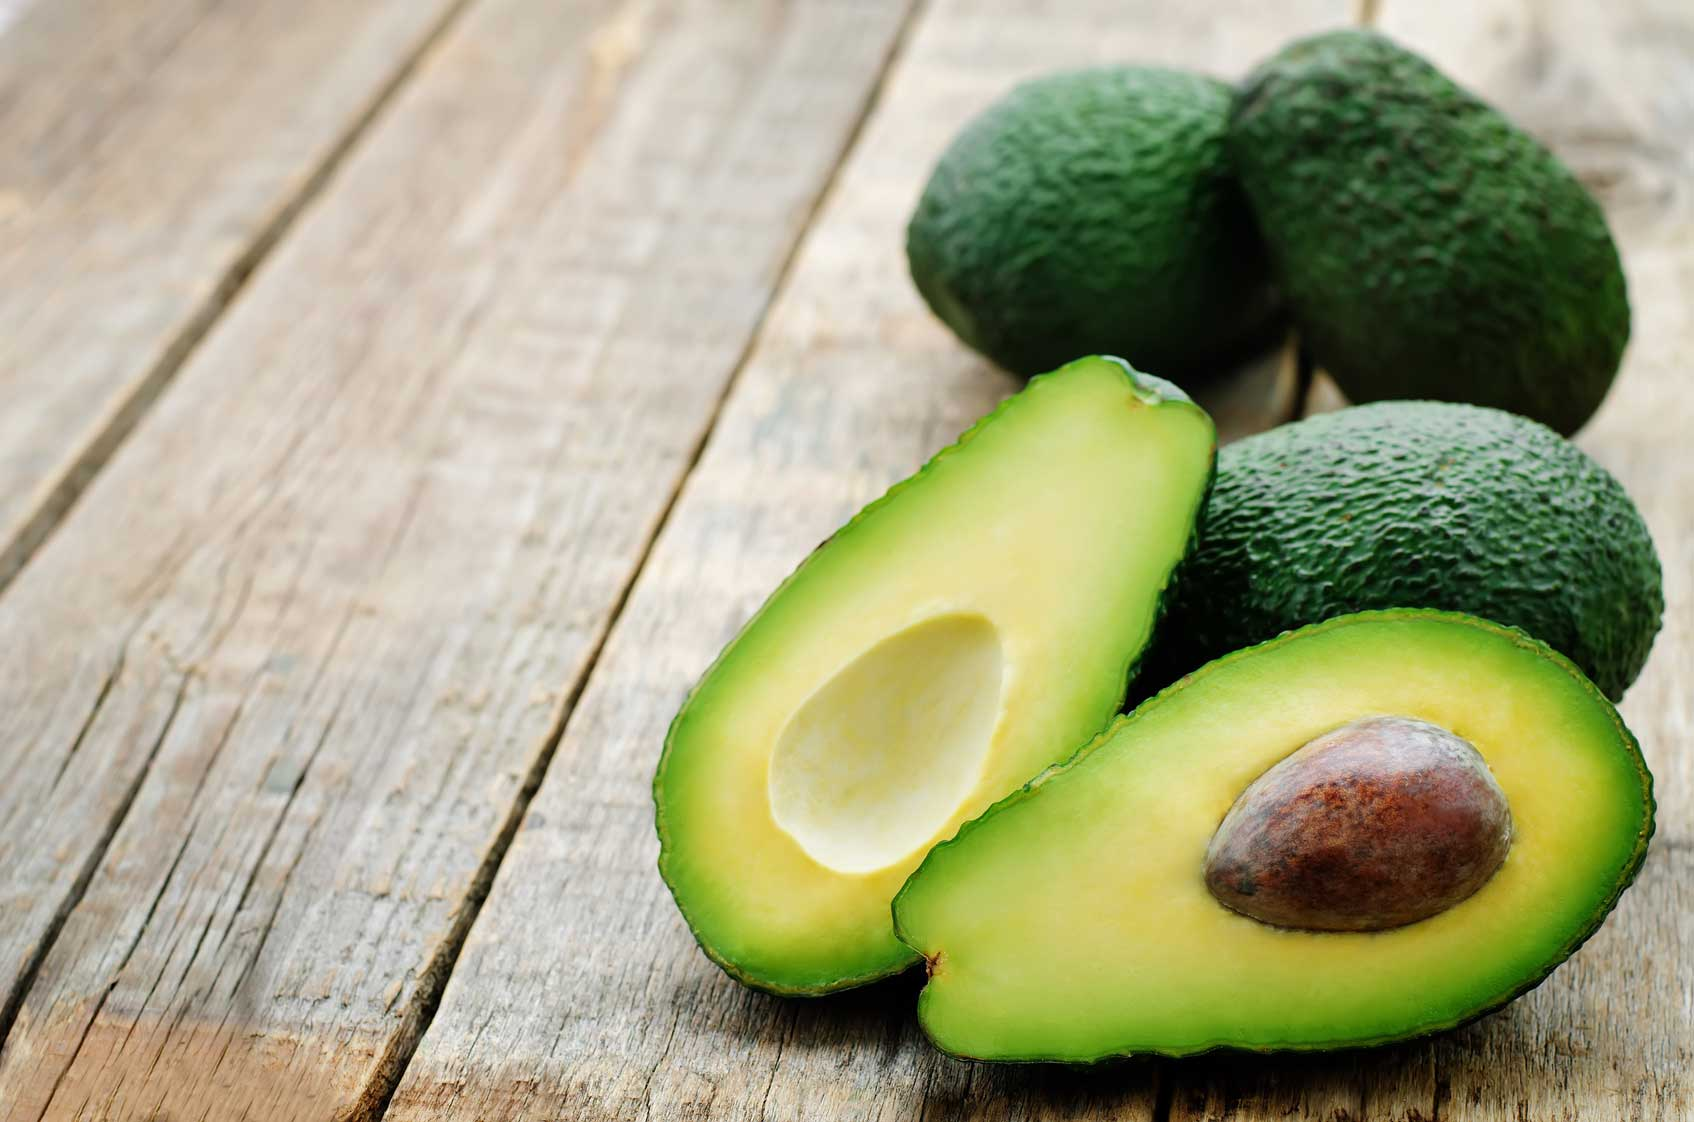 what goes well with avocados cut in half